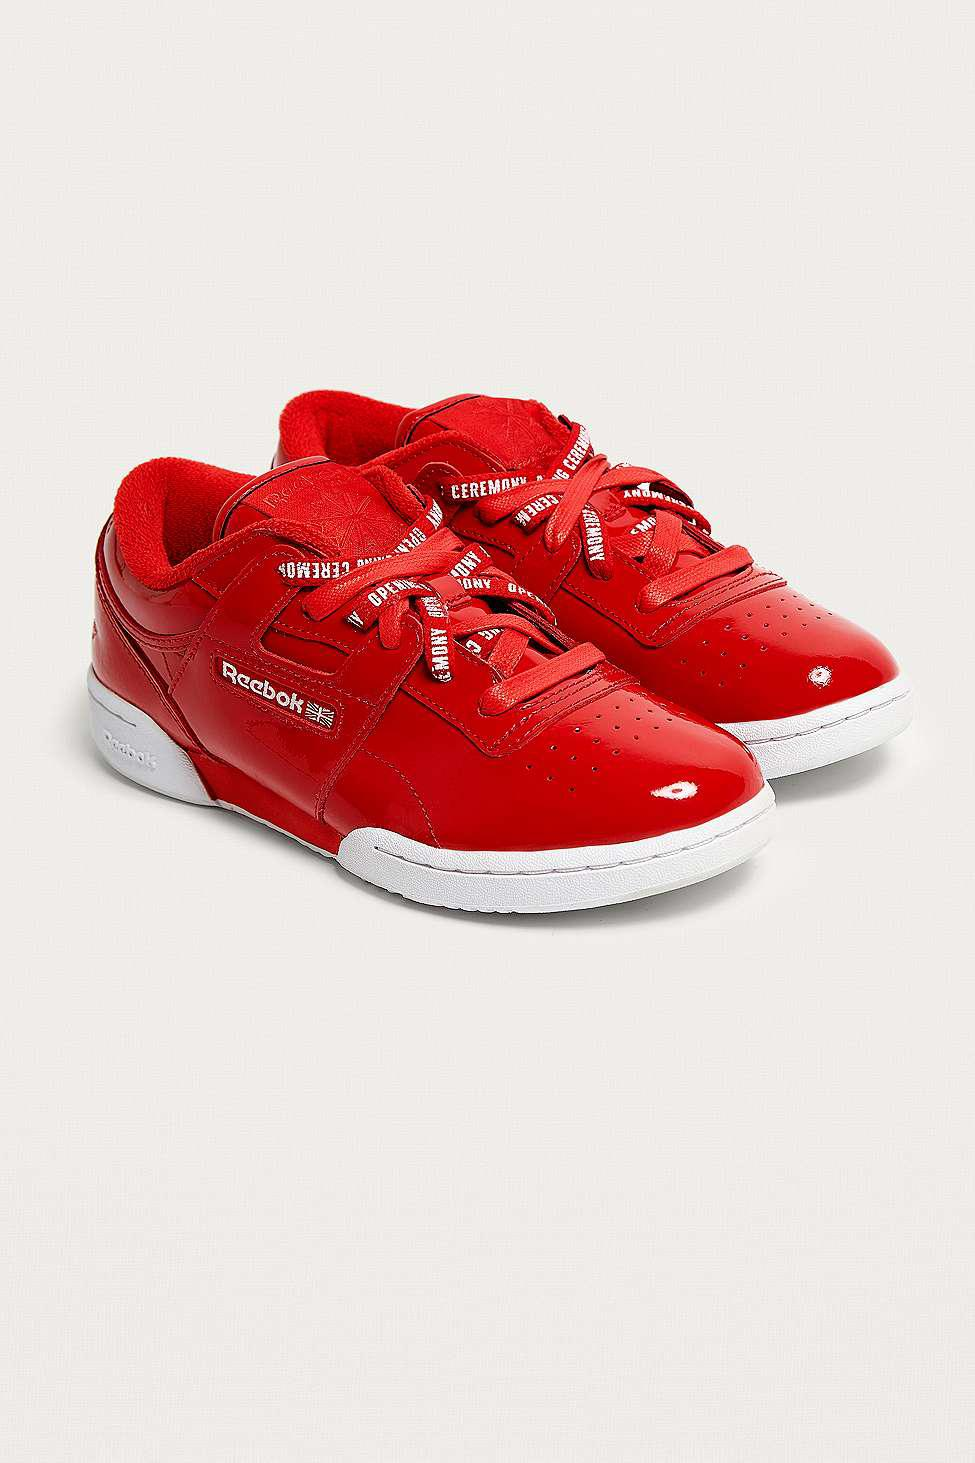 Reebok Leather X Opening Ceremony Oc Workout Lo Clean Trainers in Red